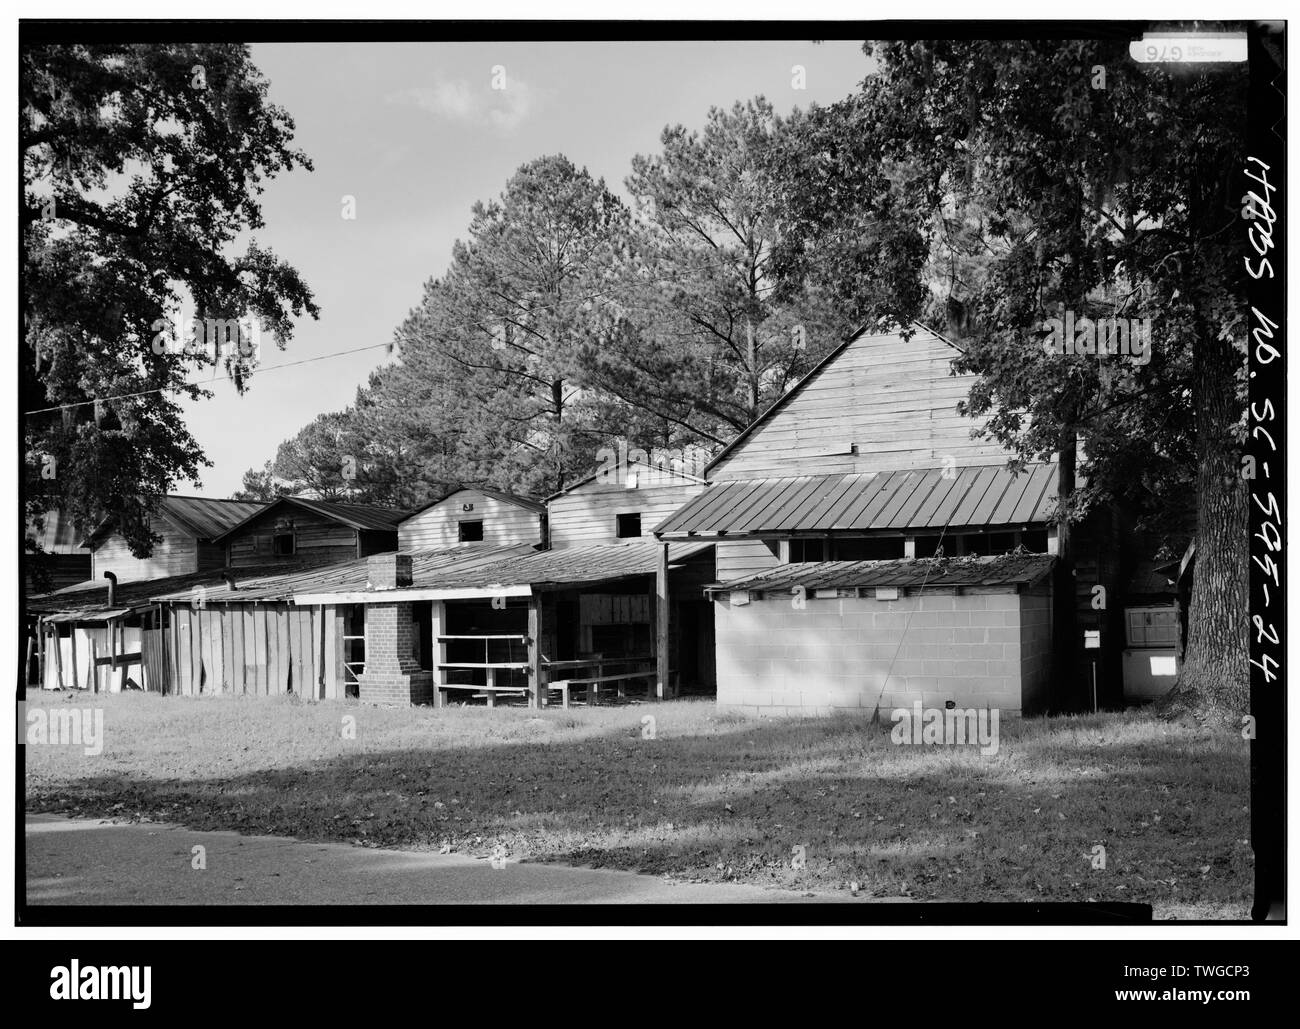 Dorchester County Black and White Stock Photos & Images - Alamy